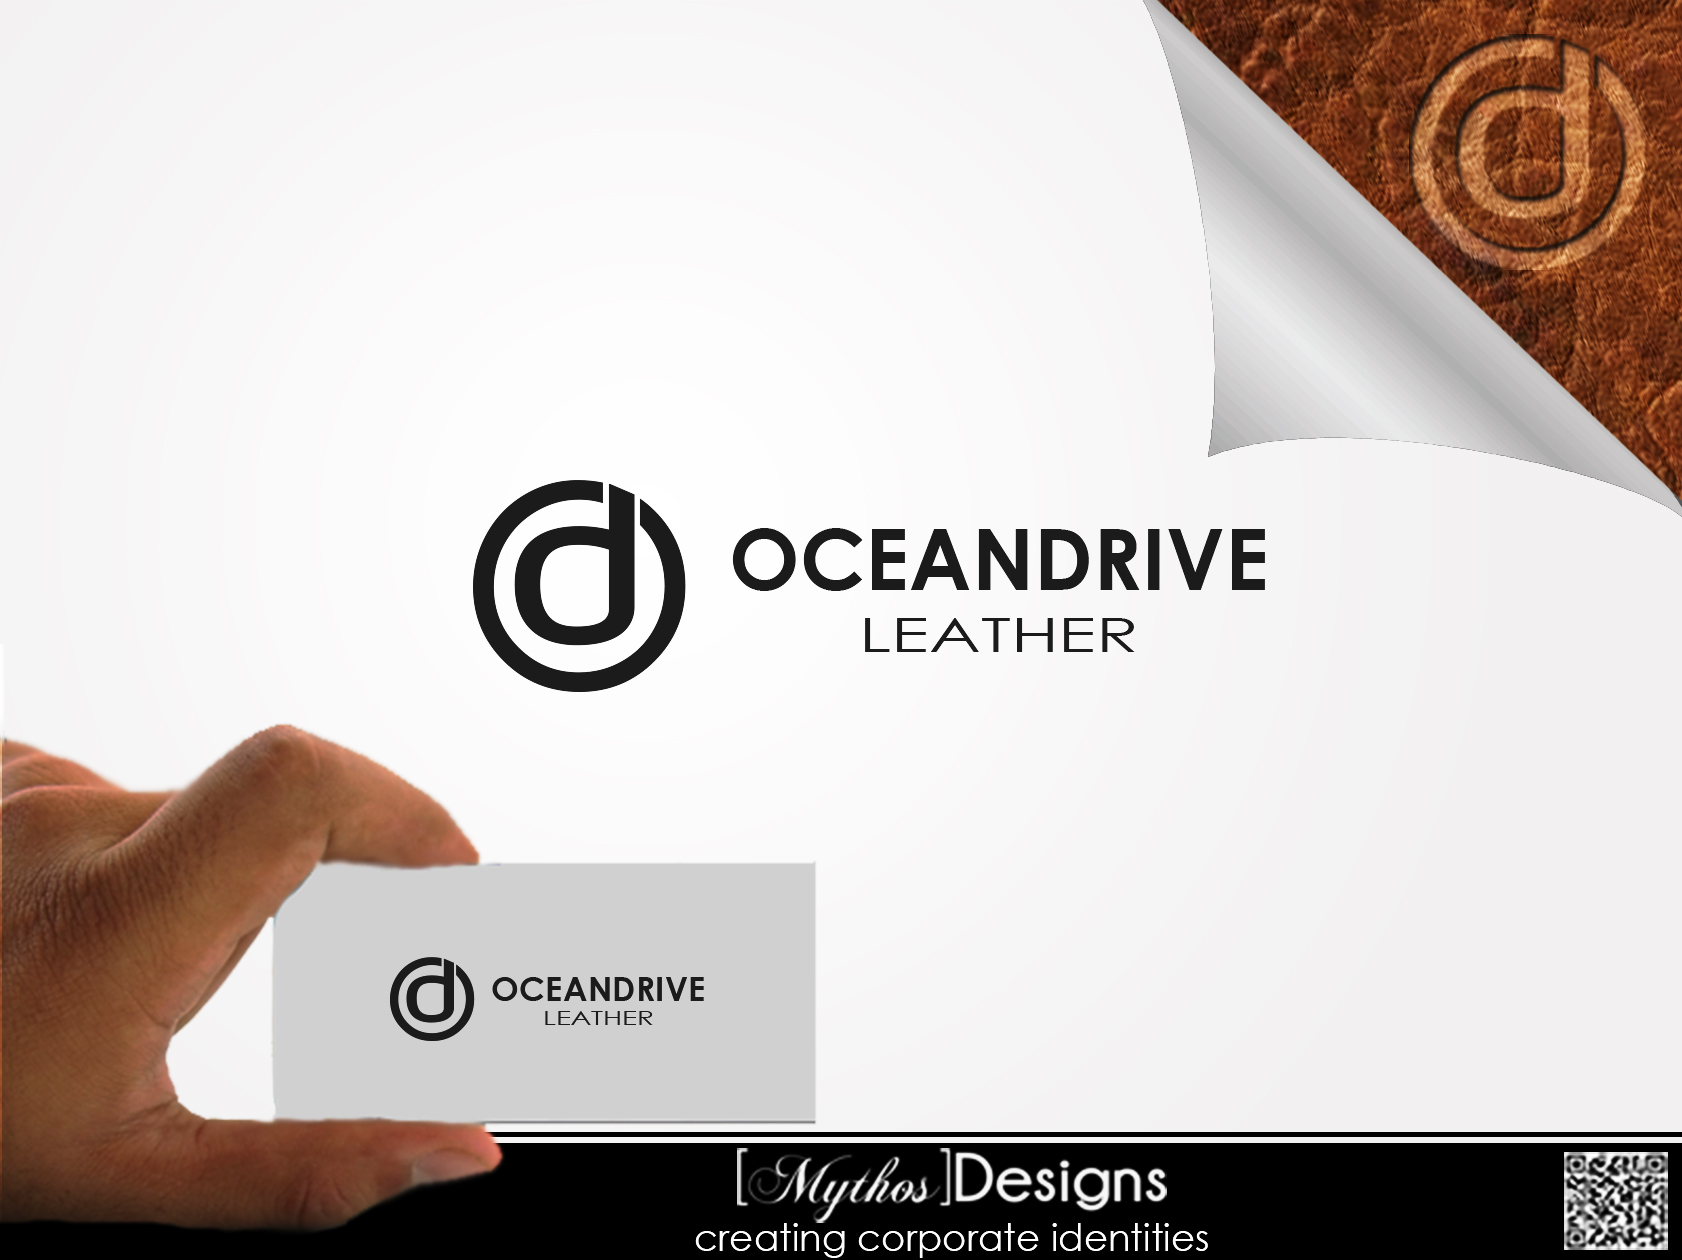 Logo Design by Mythos Designs - Entry No. 9 in the Logo Design Contest Captivating Logo Design for Oceandrive Leather.